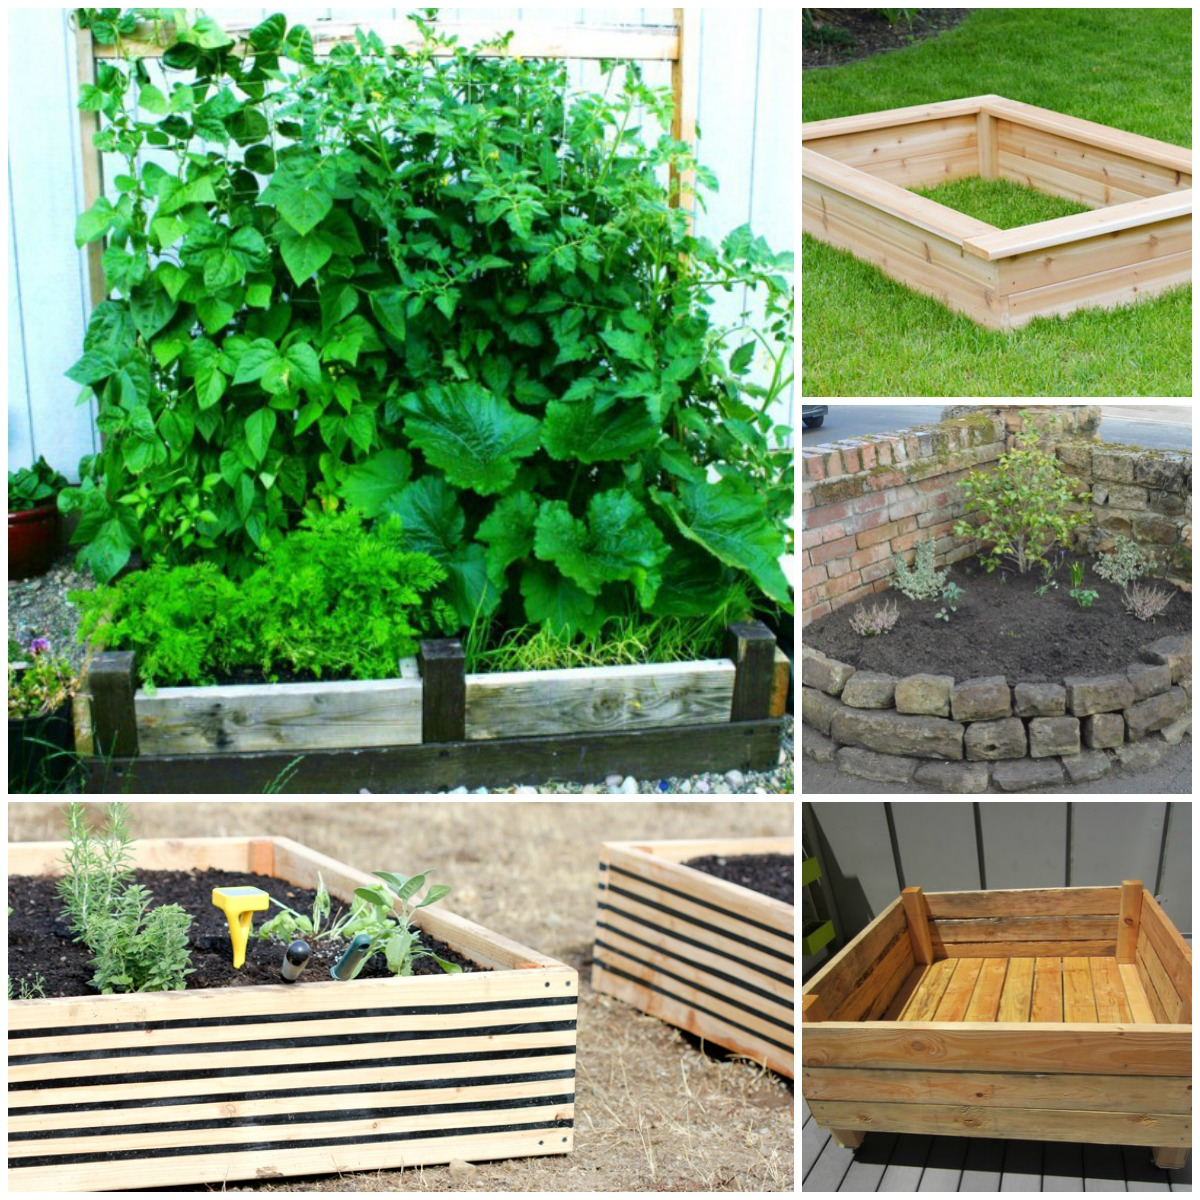 20 Brilliant Raised Garden Bed Ideas You Can Make In A ... on Raised Patio Designs  id=71829